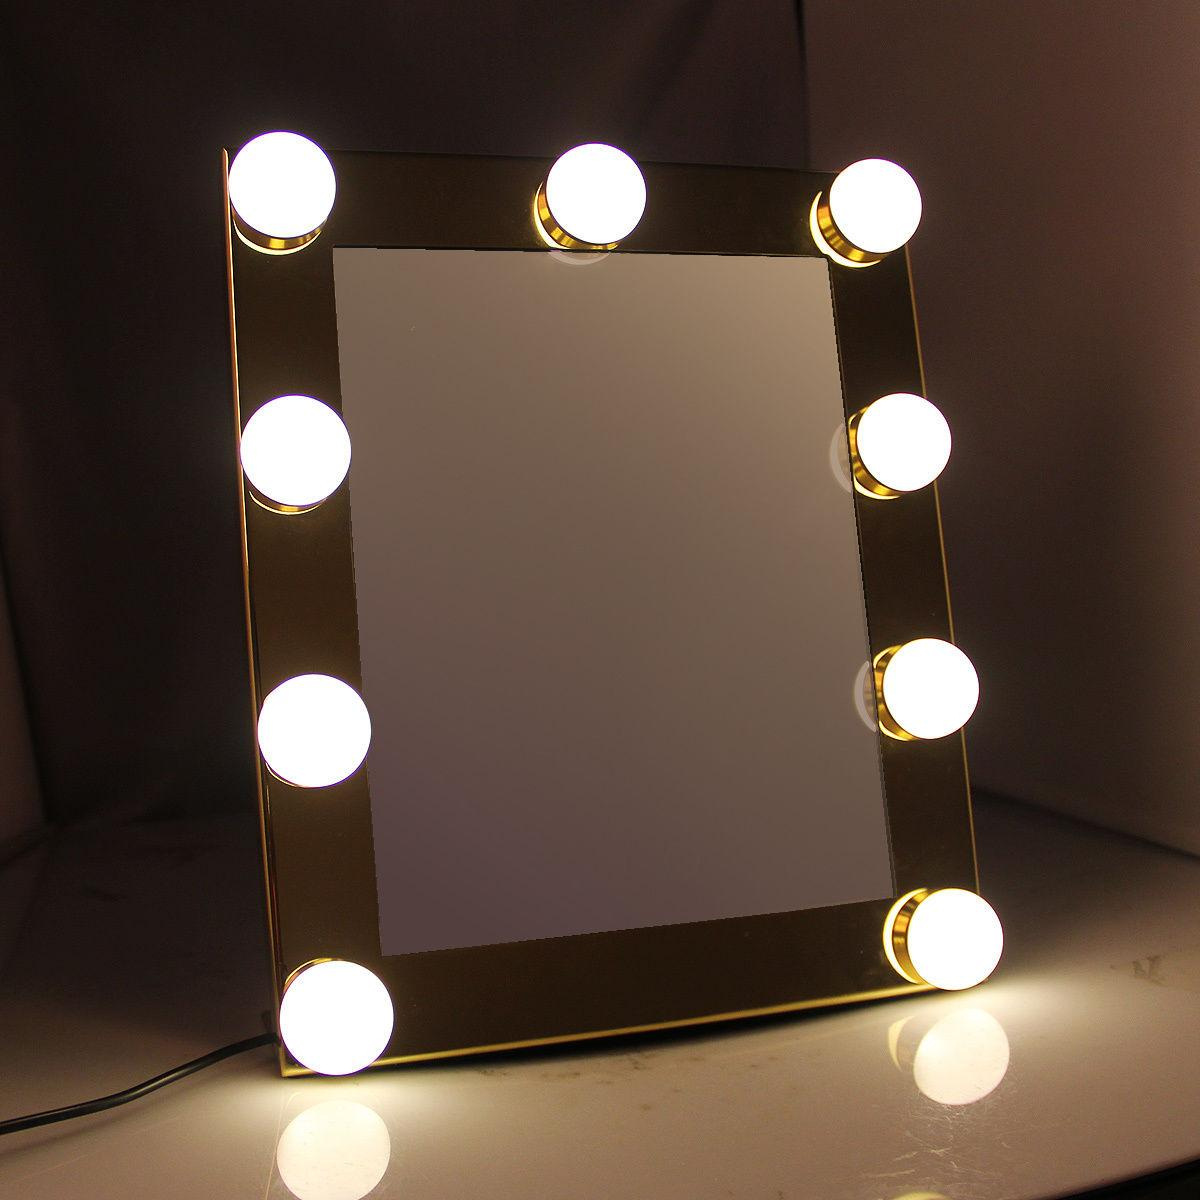 Vanity Tabletops Lighted Makeup Mirror With 9 Led Bulb Lights Touch ...